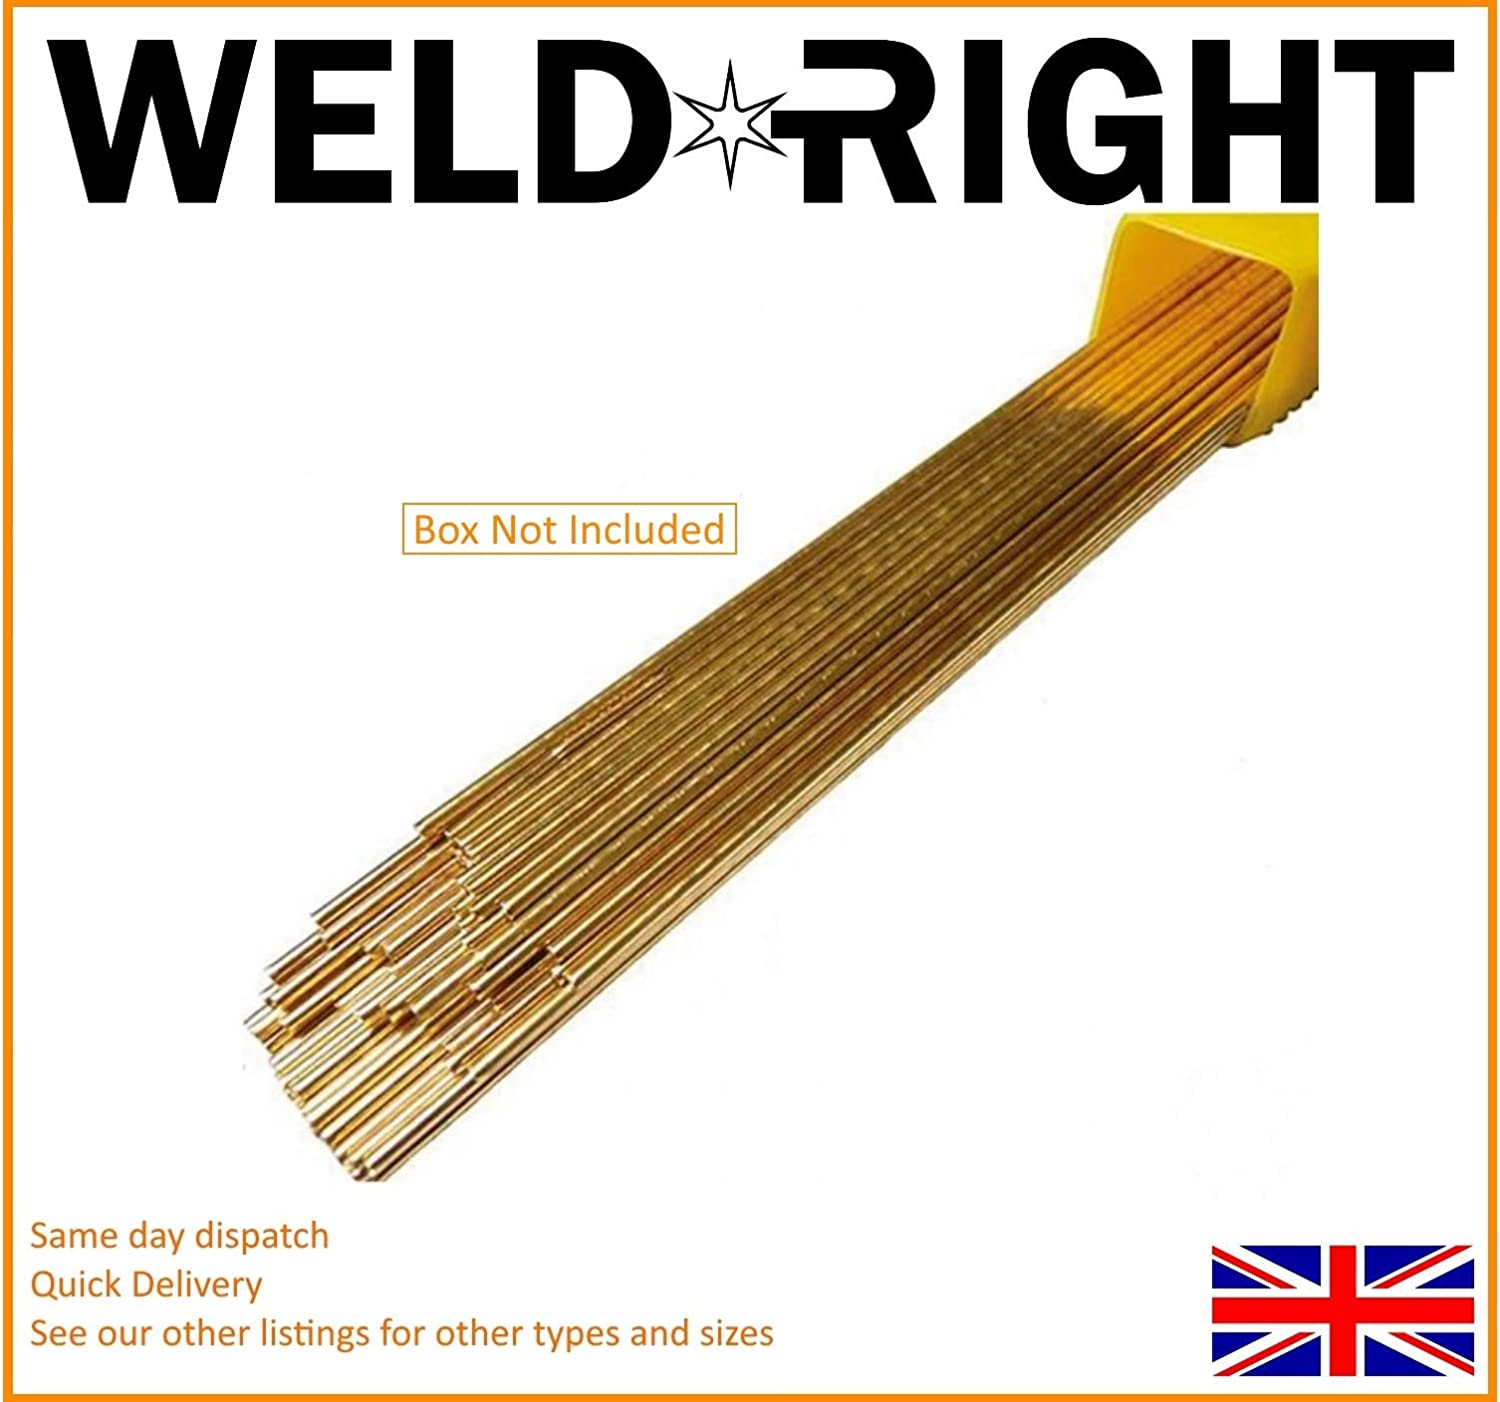 300mm Weld Right Sifbronze No 1 Brazing Welding Rods 1.6mm x 50 Rods